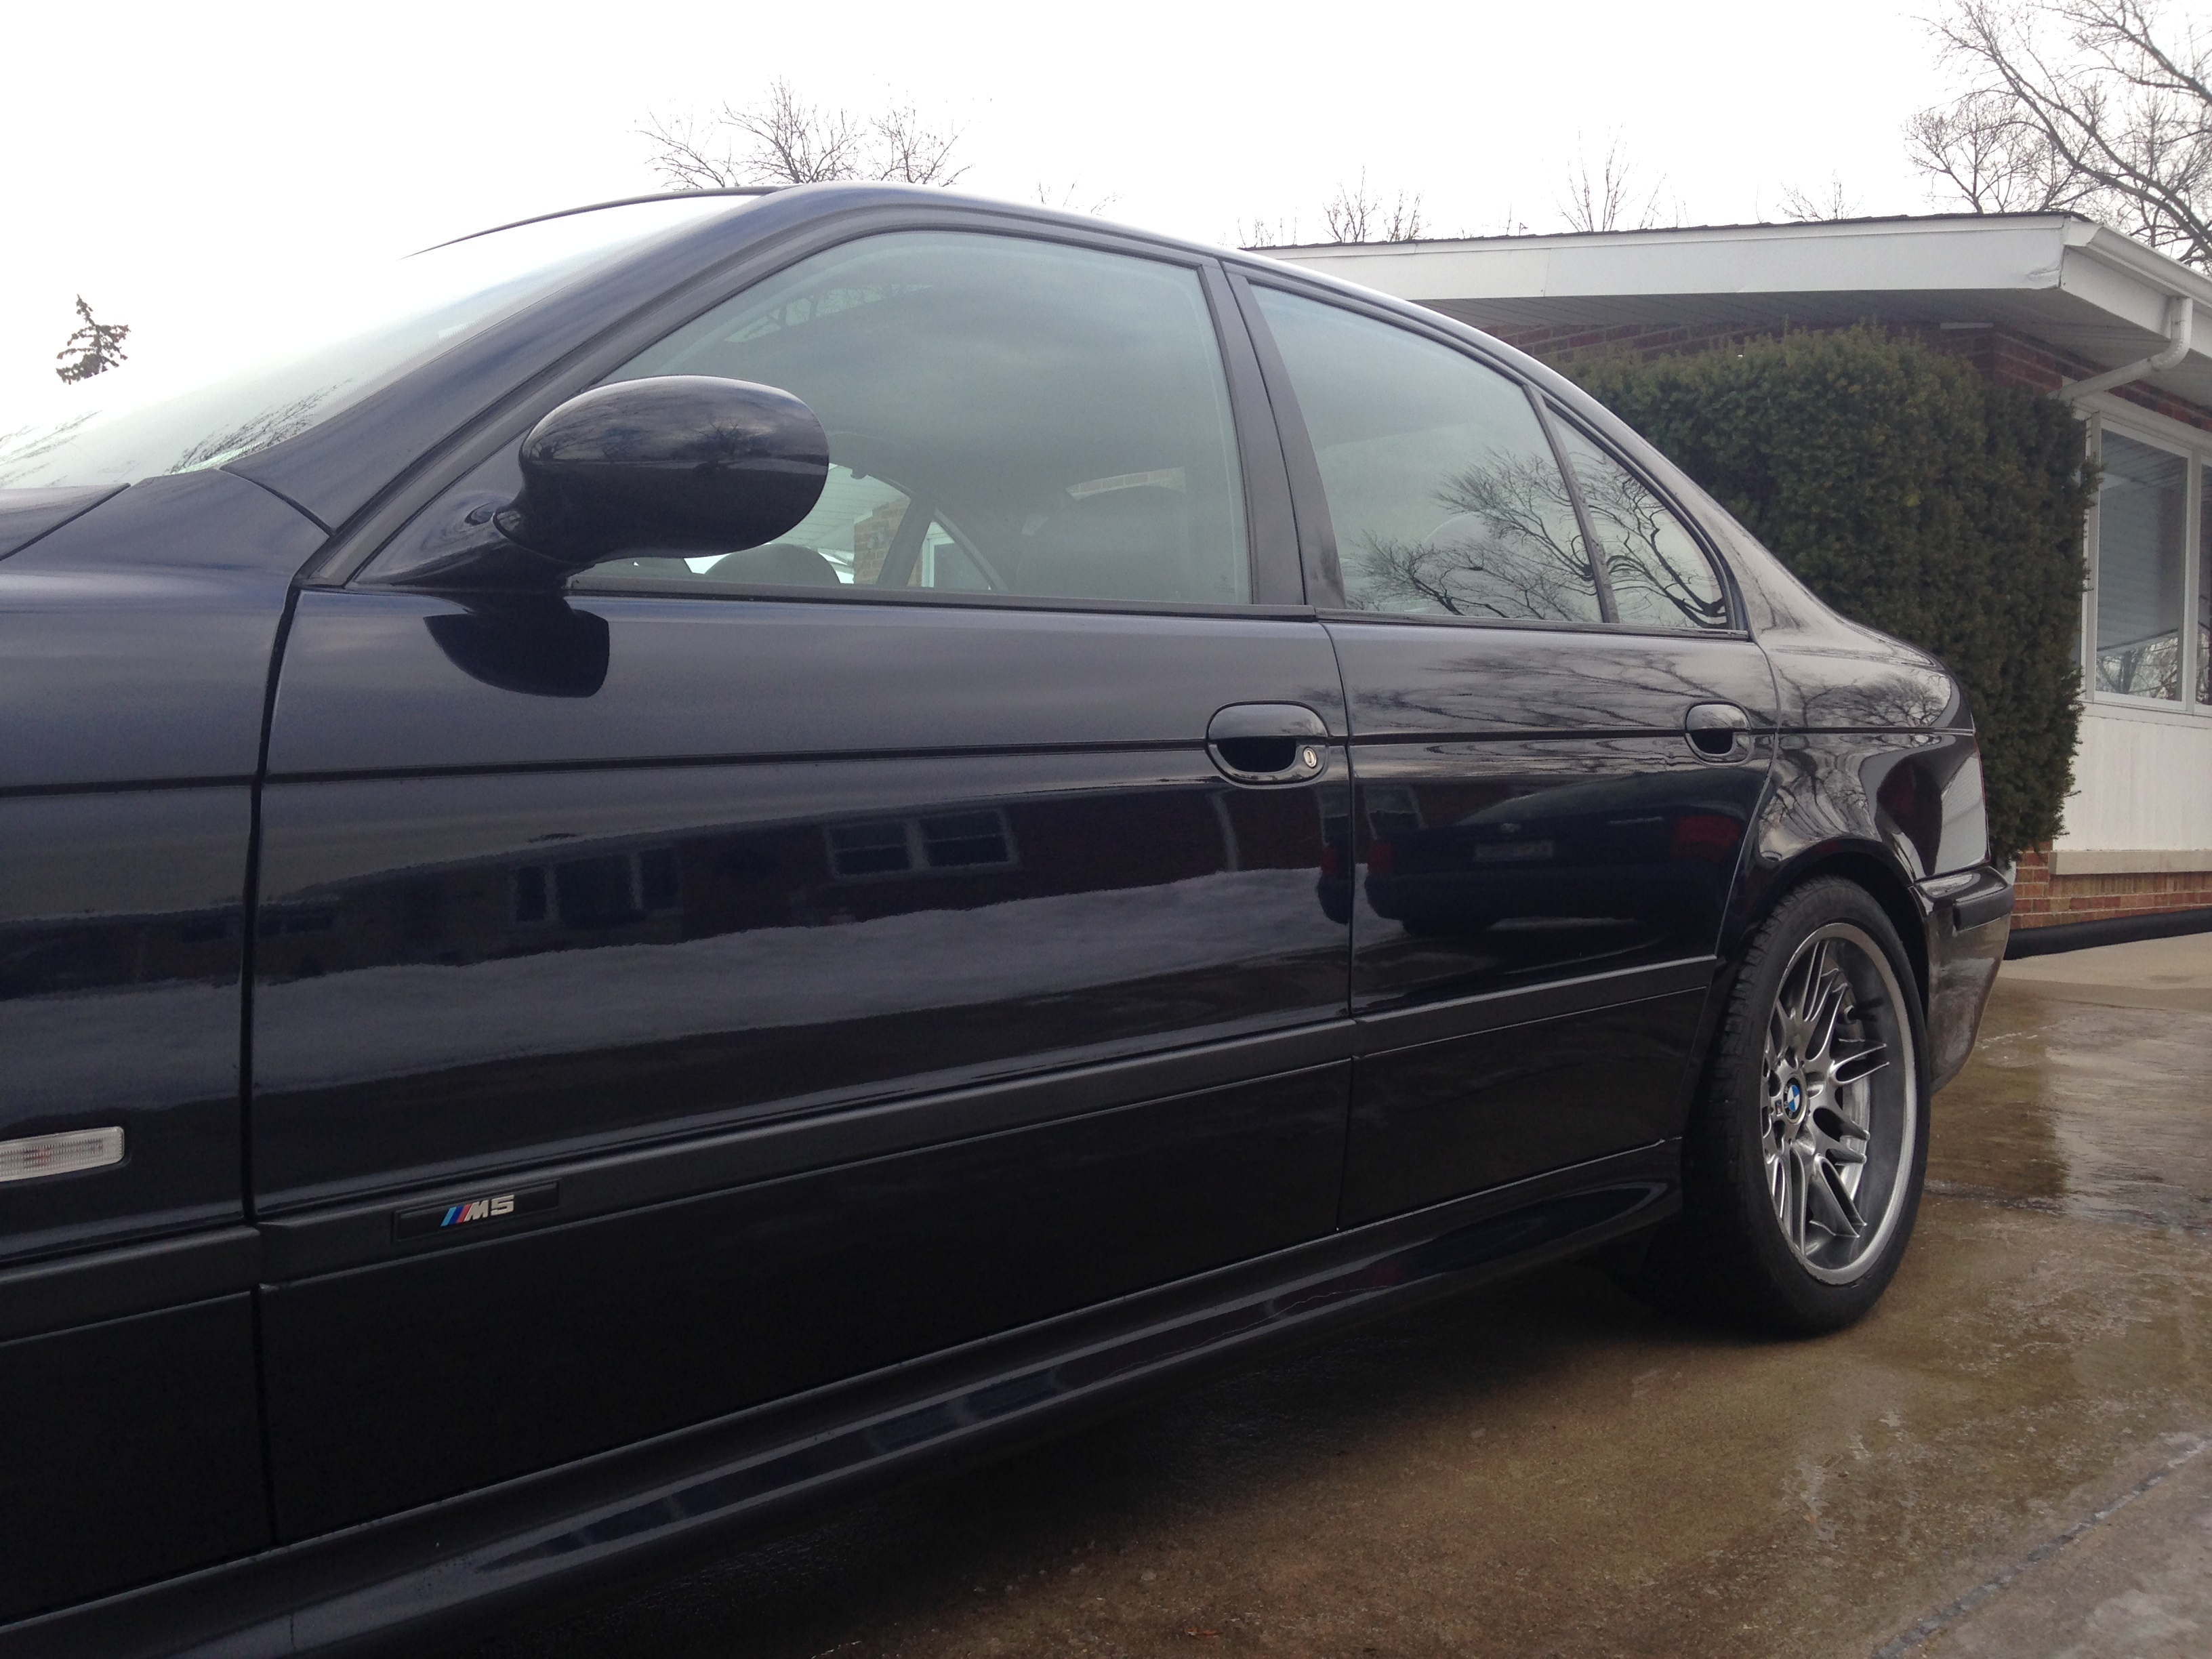 E39 (96-03) For Sale - 2001 BMW M5 For Sale *55K Miles